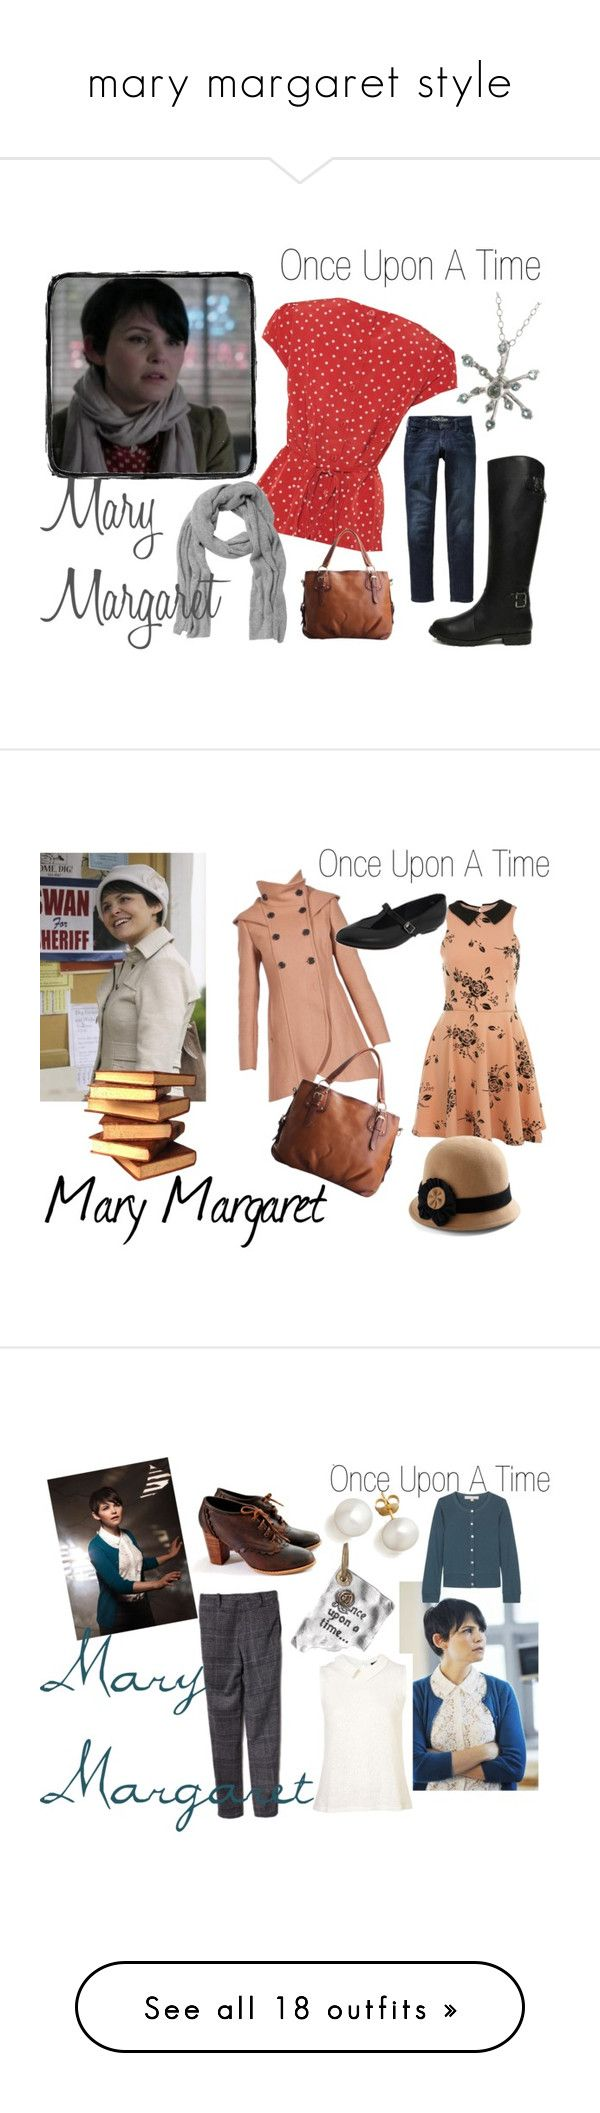 """mary margaret style"" by onceuponanovel ❤ liked on Polyvore featuring A